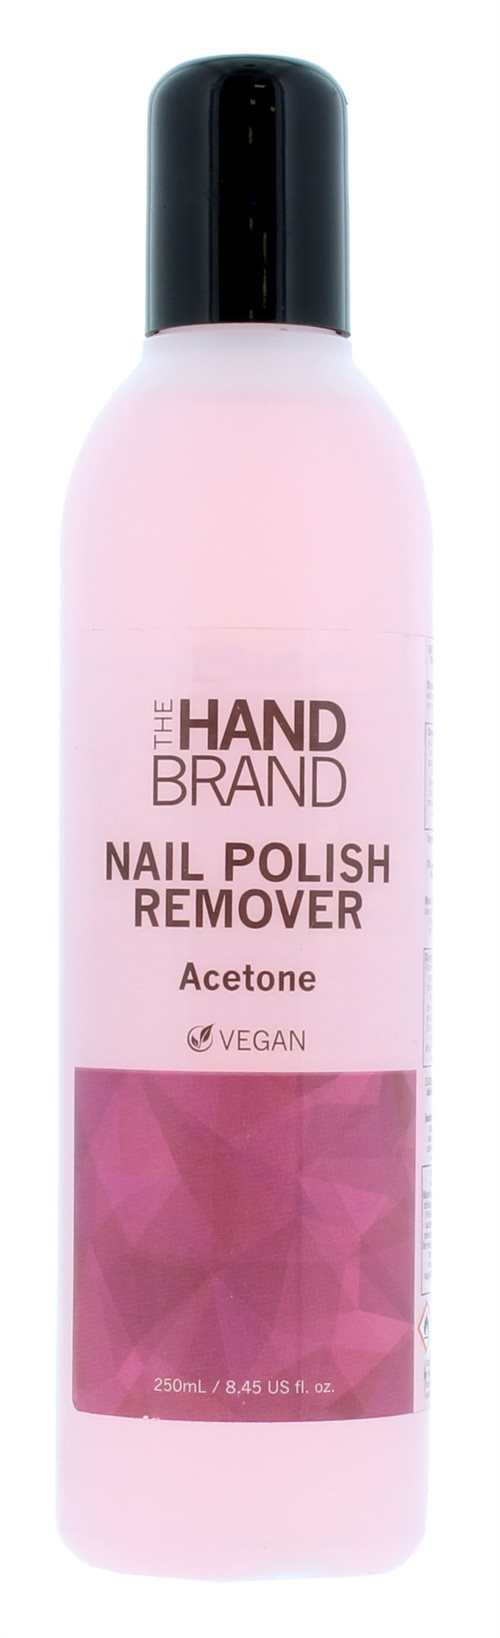 The Hand Brand 250ml Nail Polish Remover With Acetone